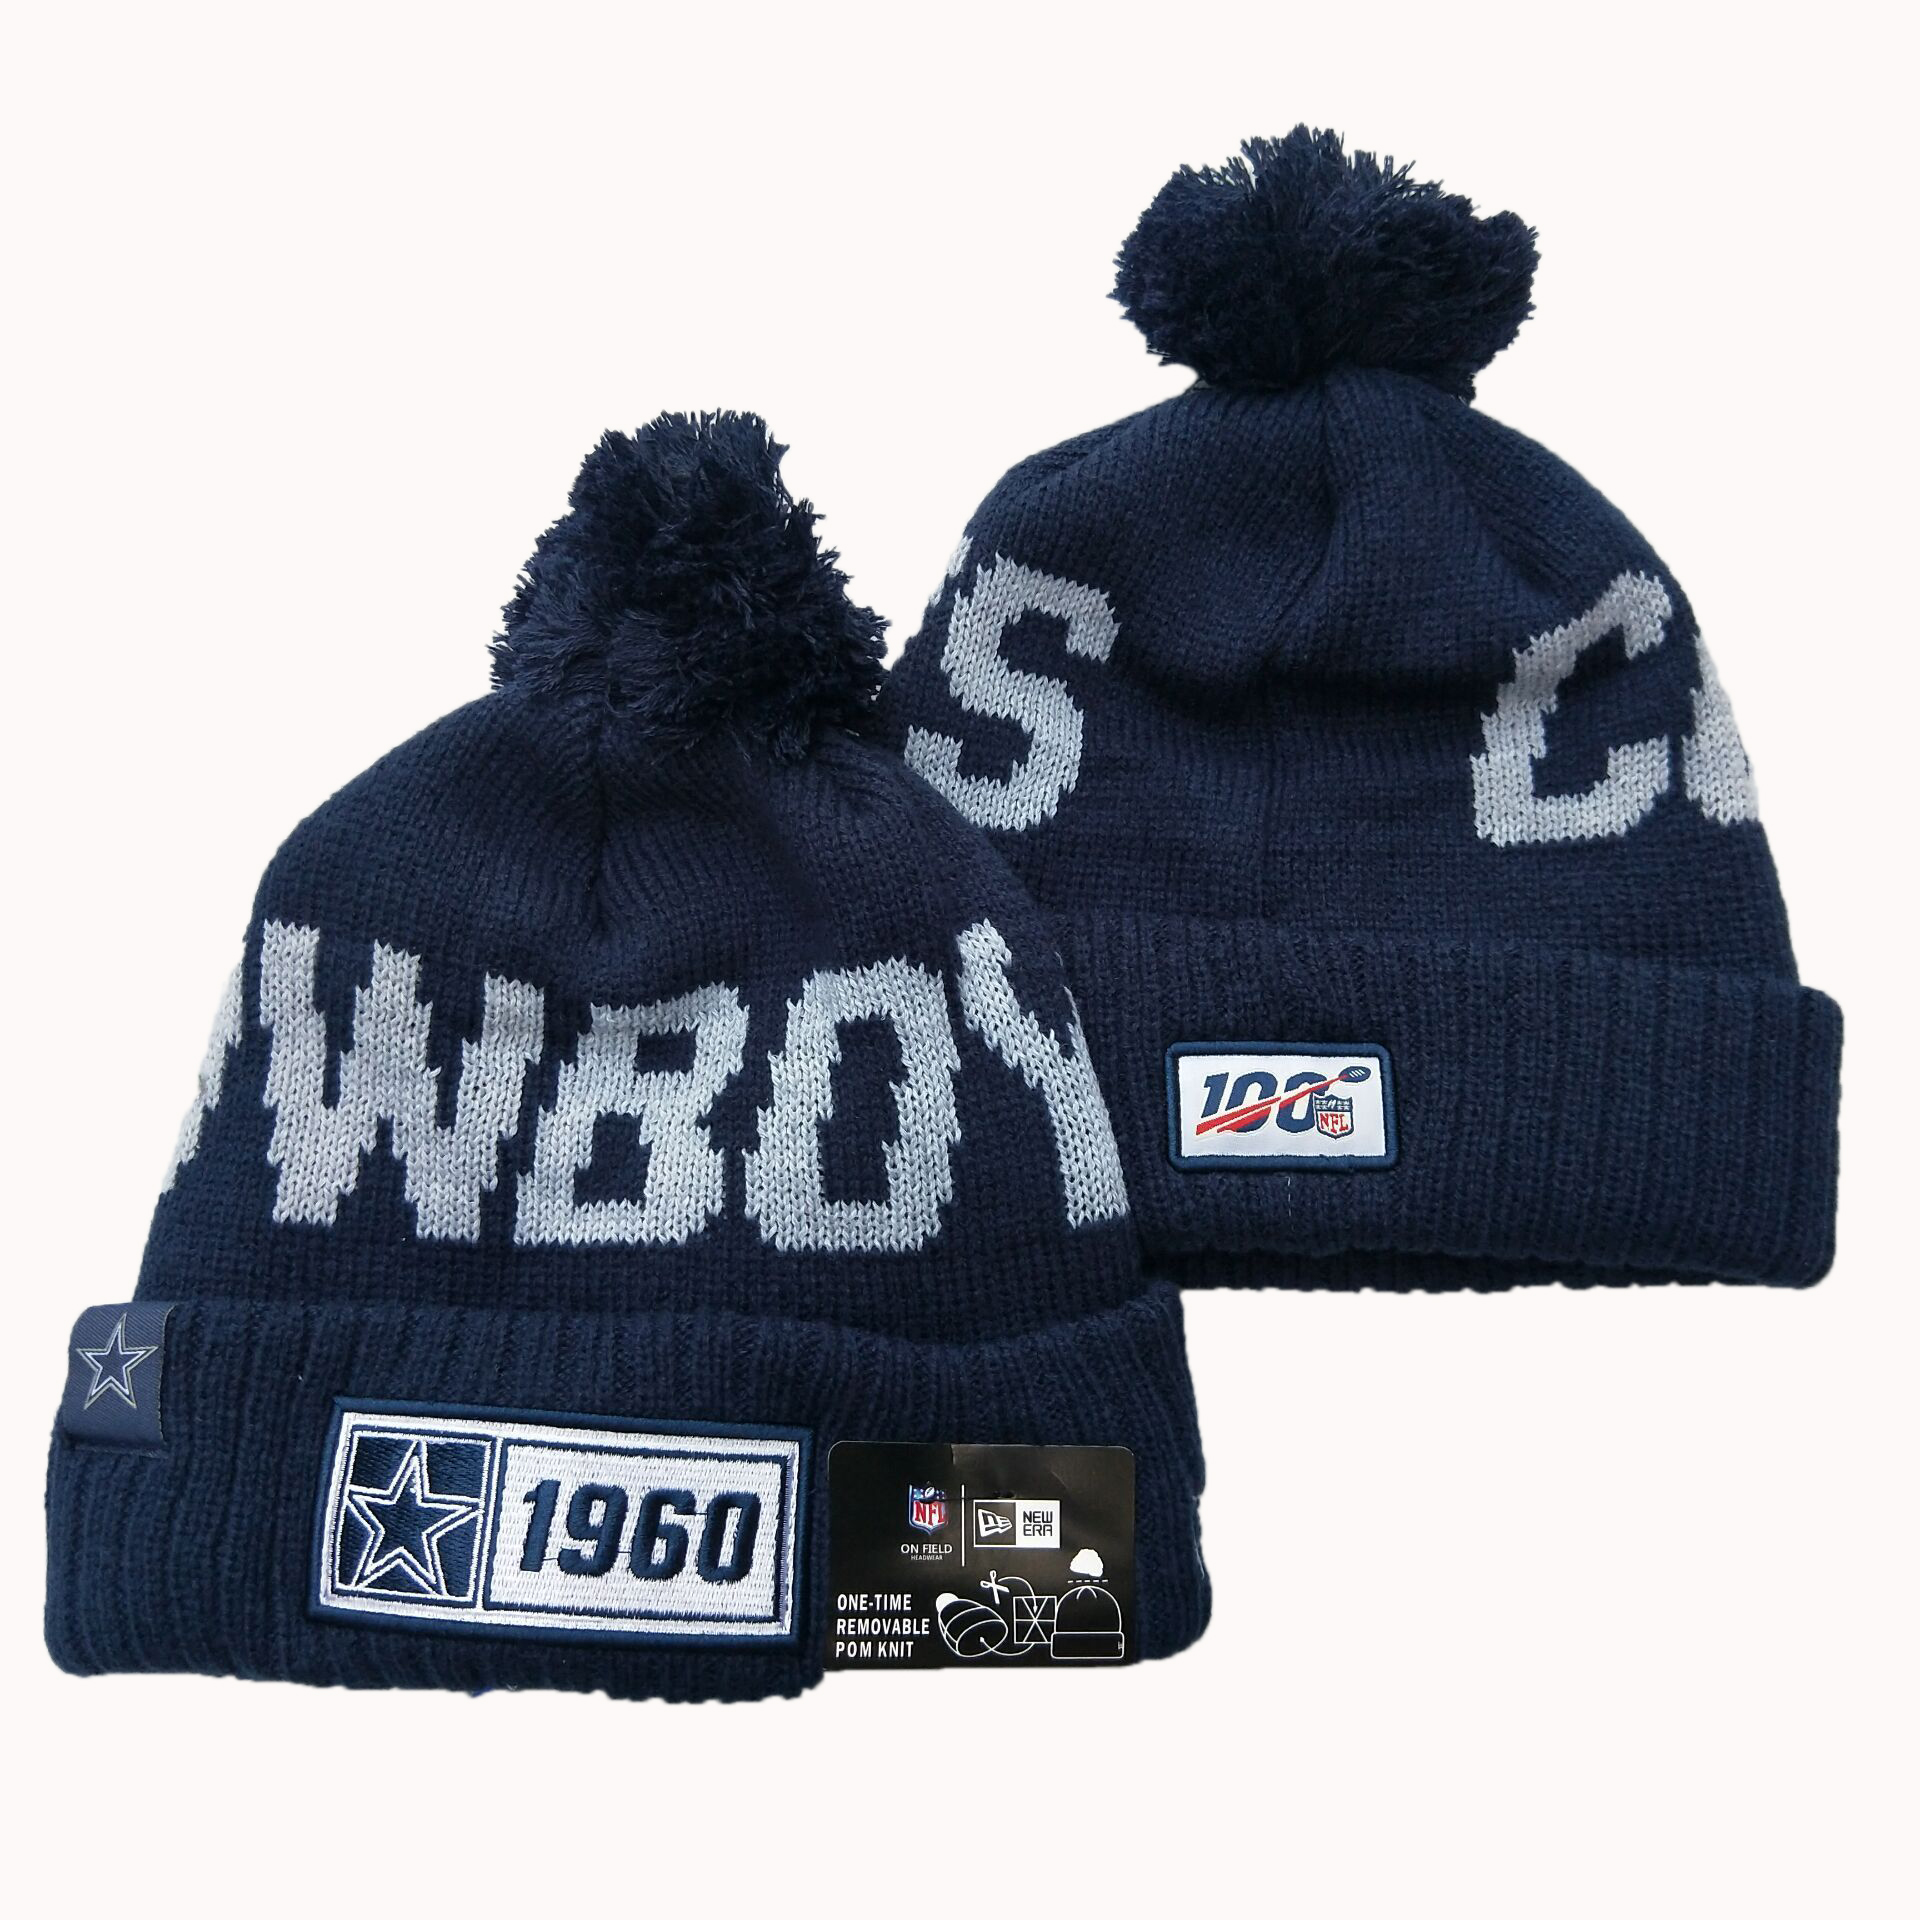 Dallas Cowboys Knit Hats 067